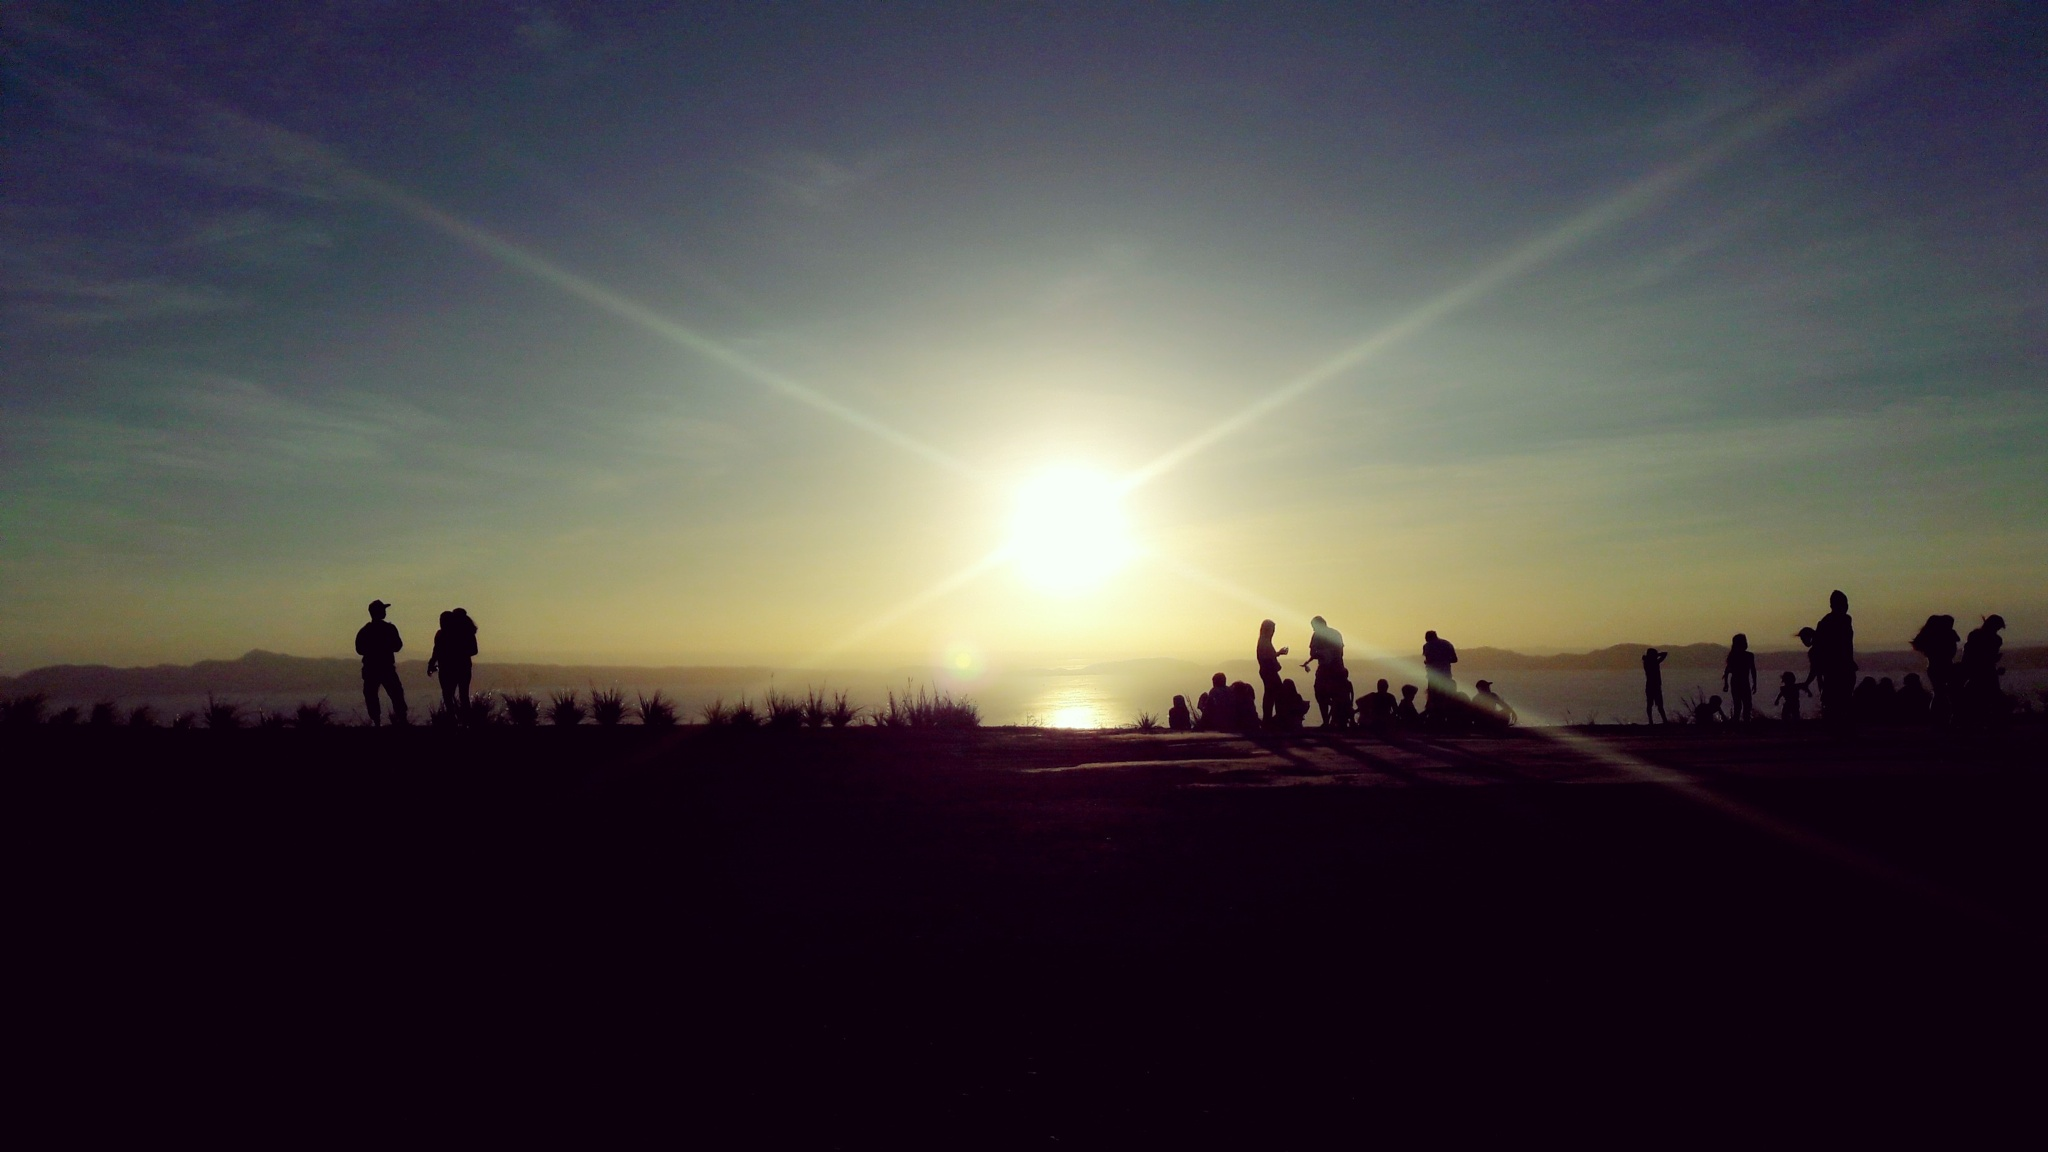 sunset from tanay rizal by Ashley Pedro